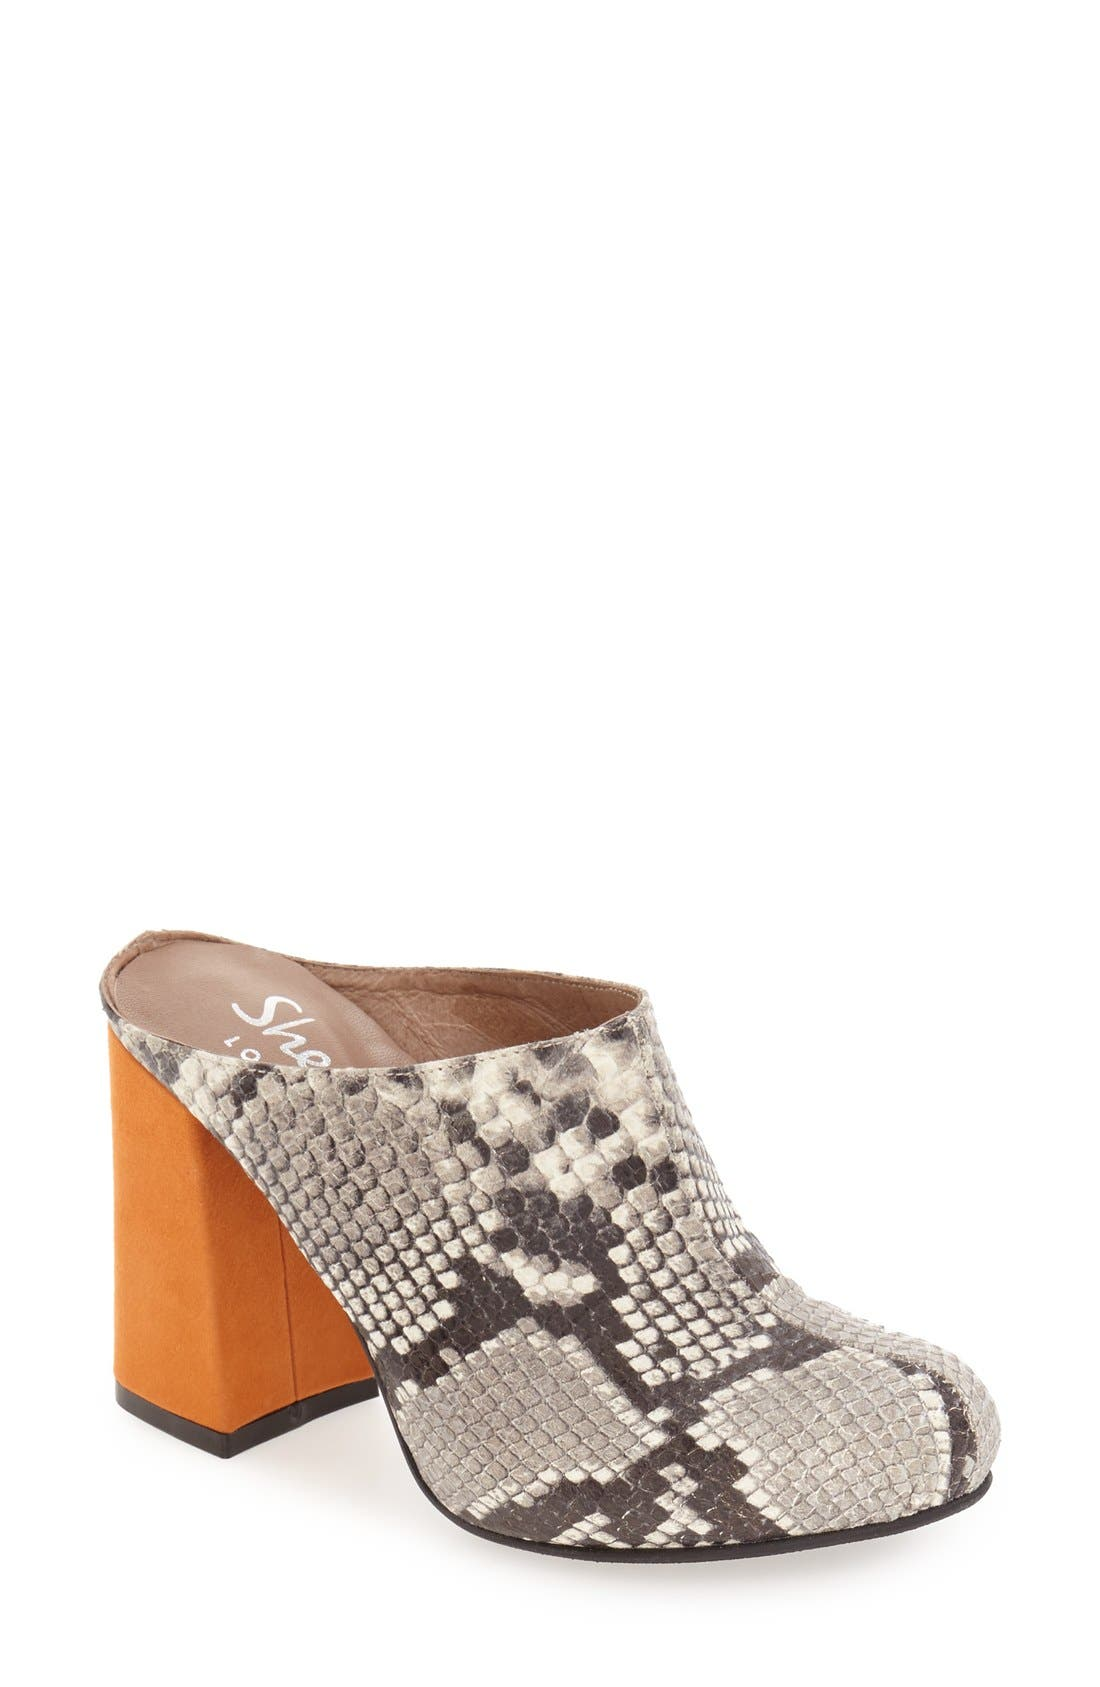 Shellys London 'Kylie' Mule (Women)